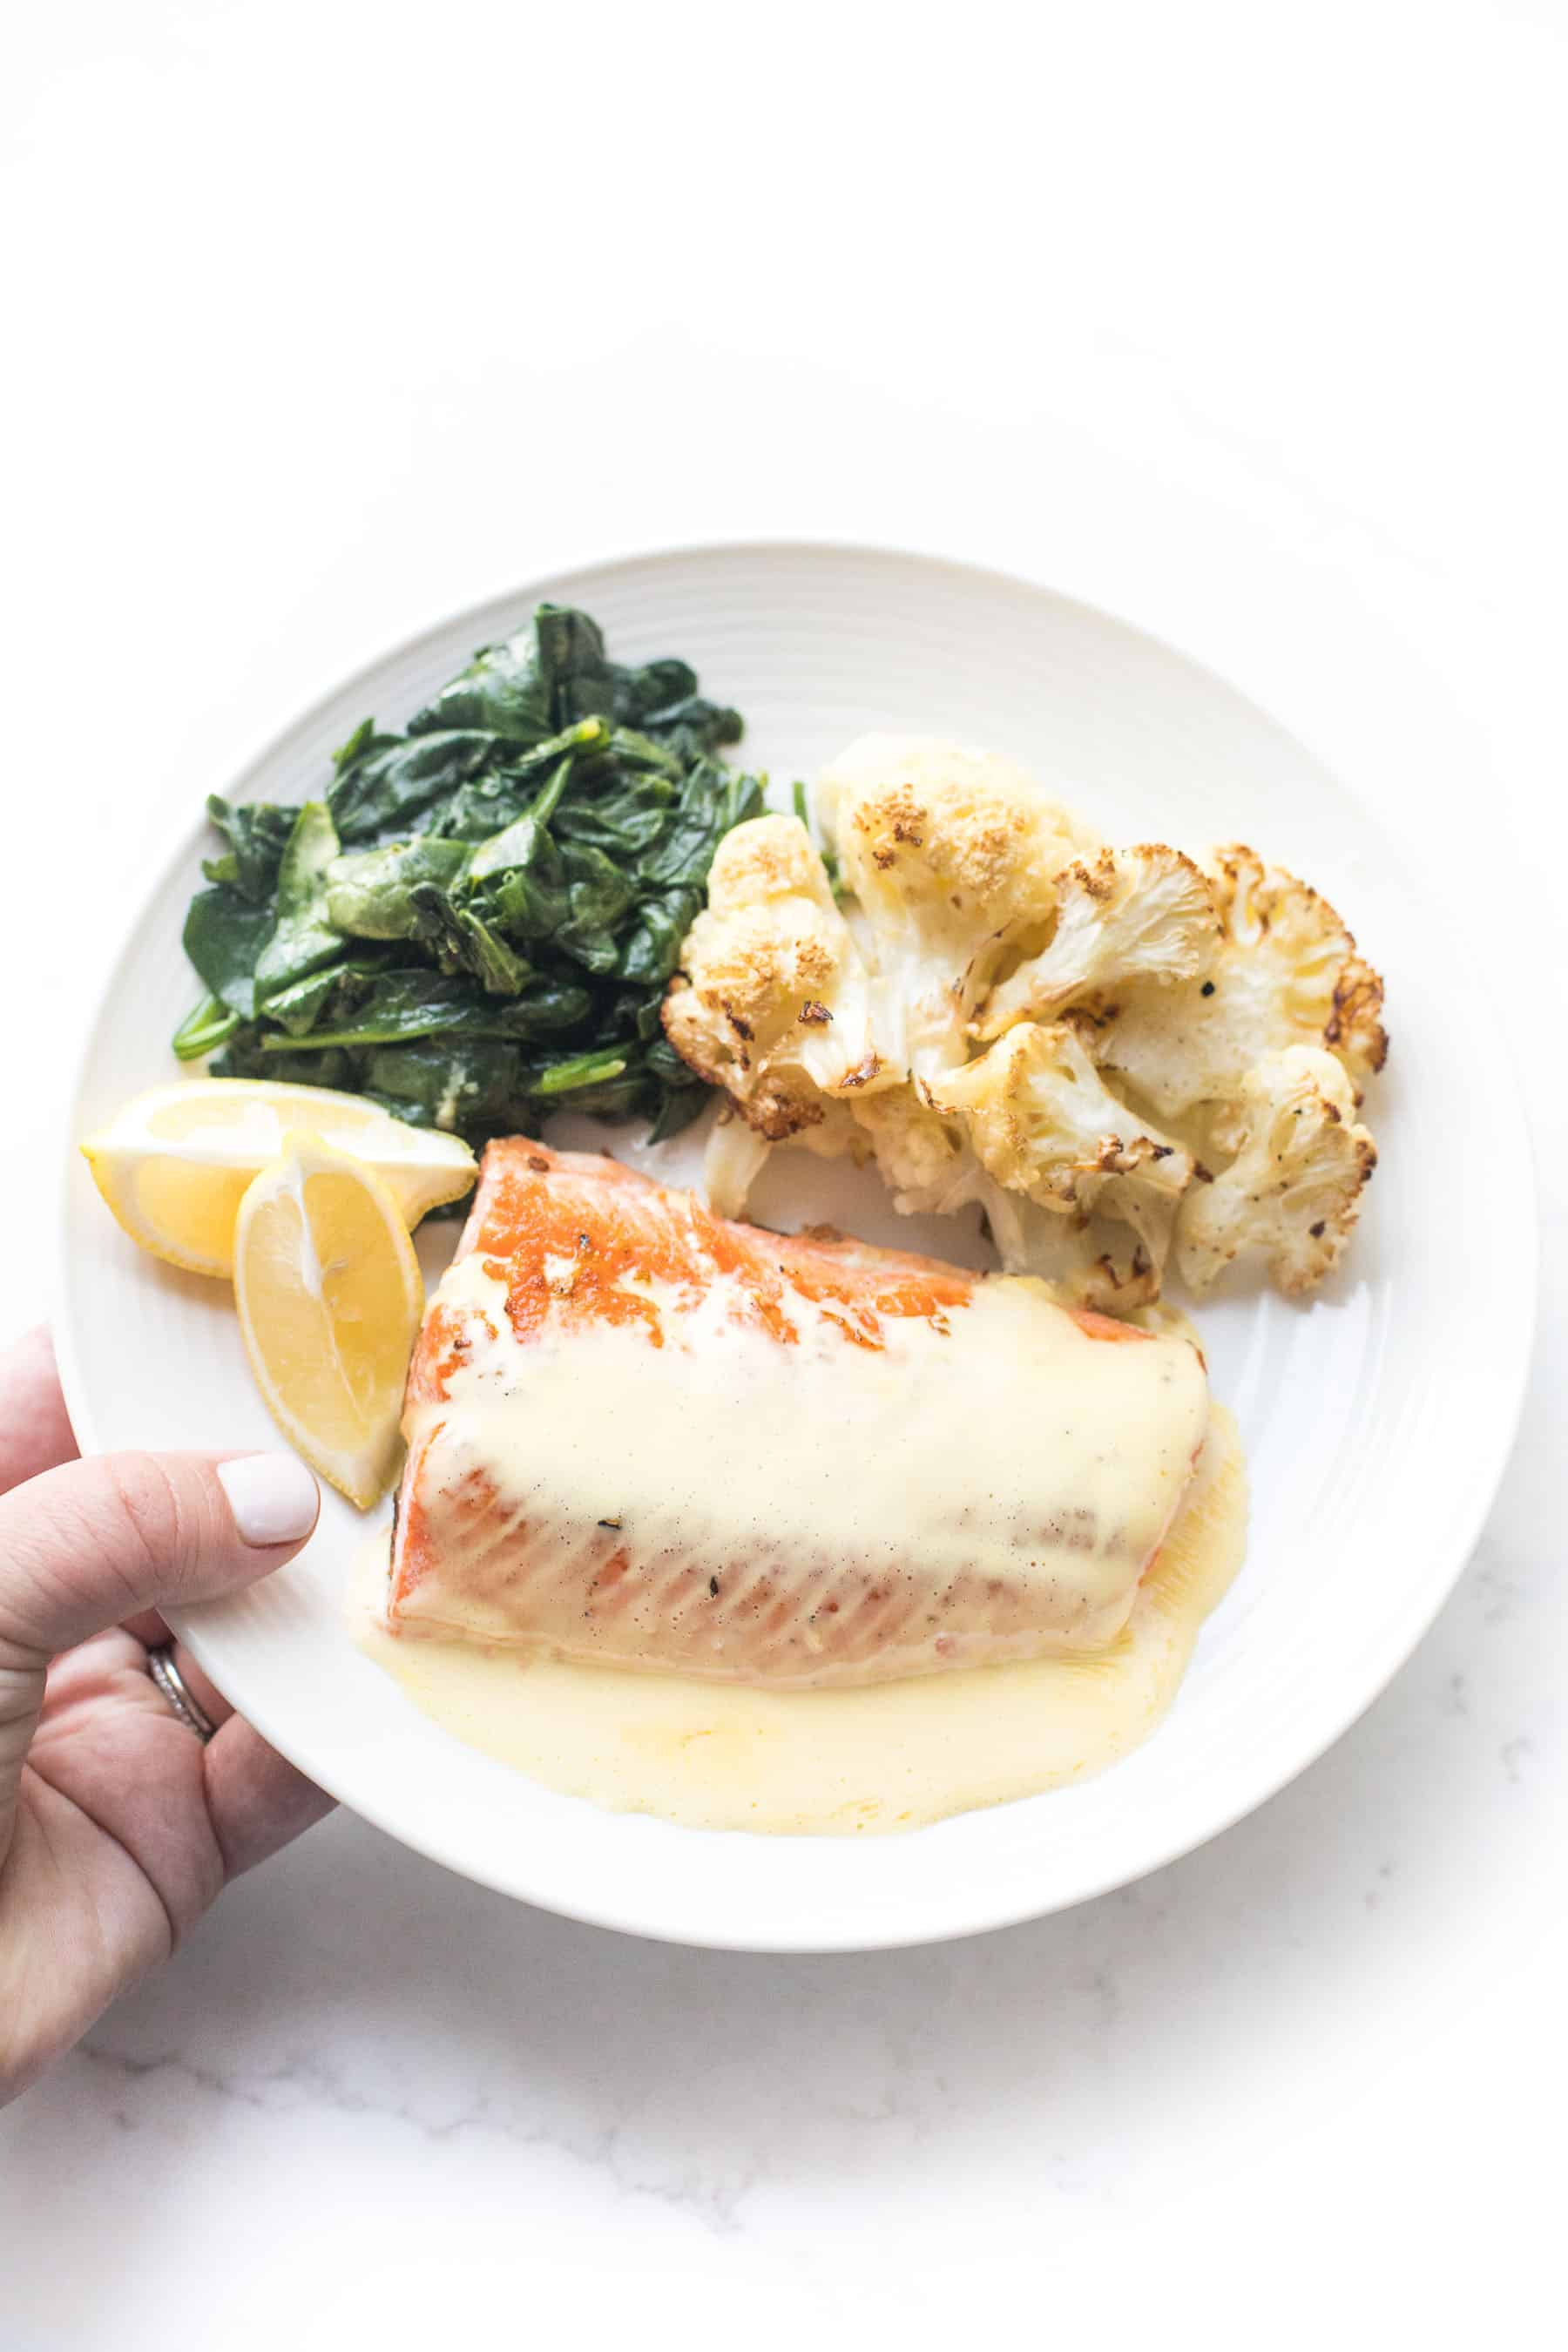 a hand holding a white plate with salmon and hollandaise sauce, roasted cauliflower, sauteed spinach on a white background